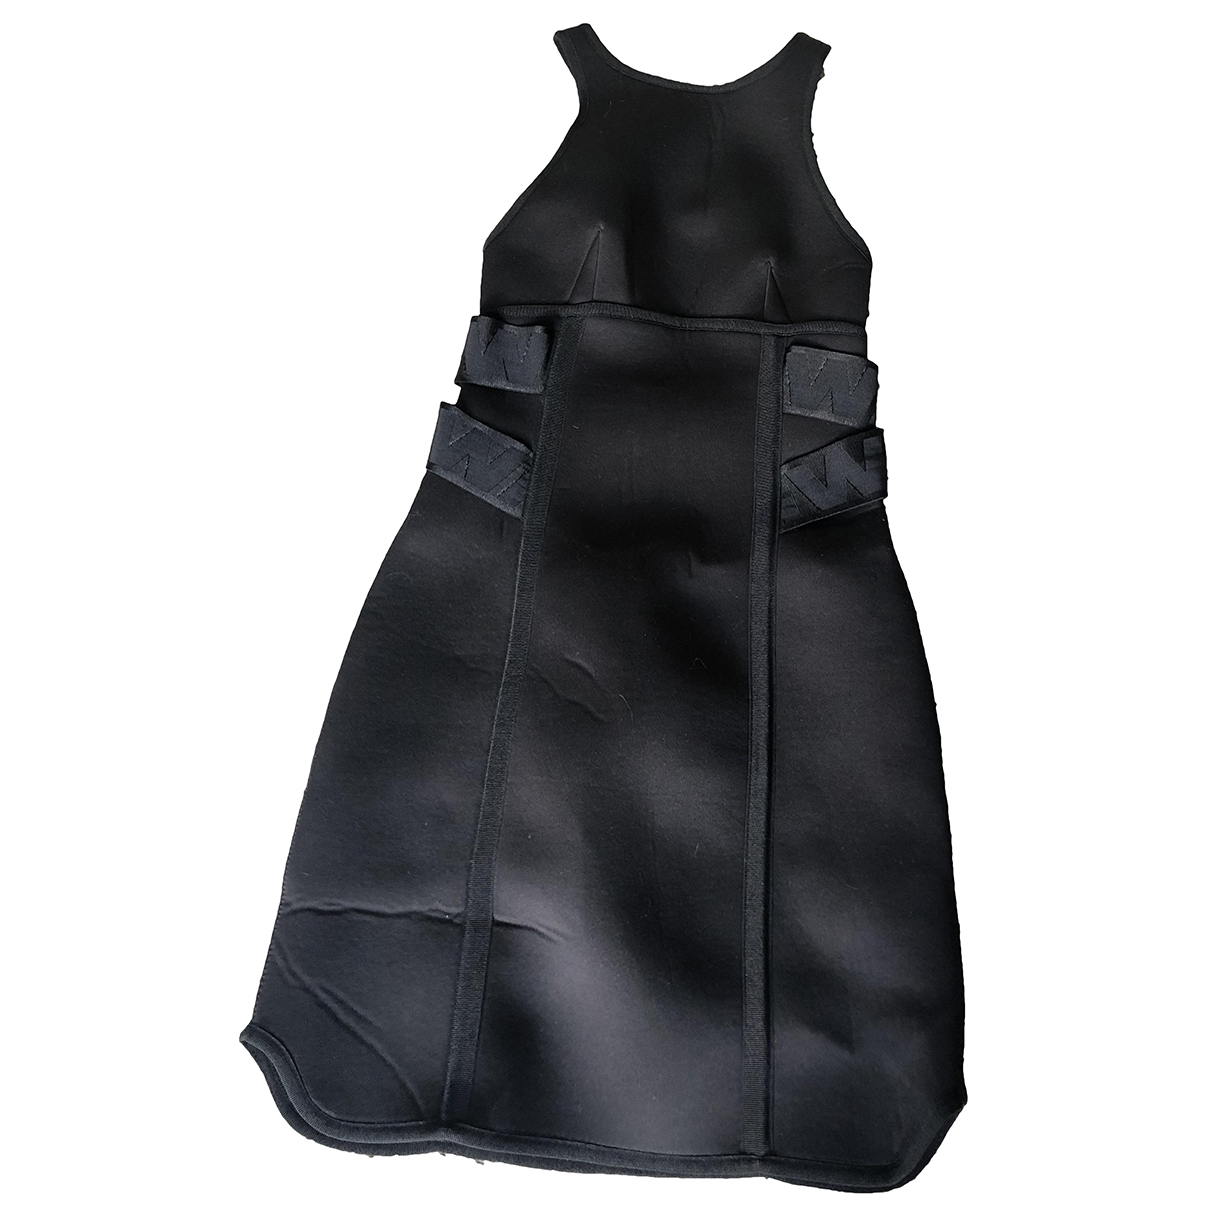 Alexander Wang Pour H&m \N Black dress for Women 36 FR